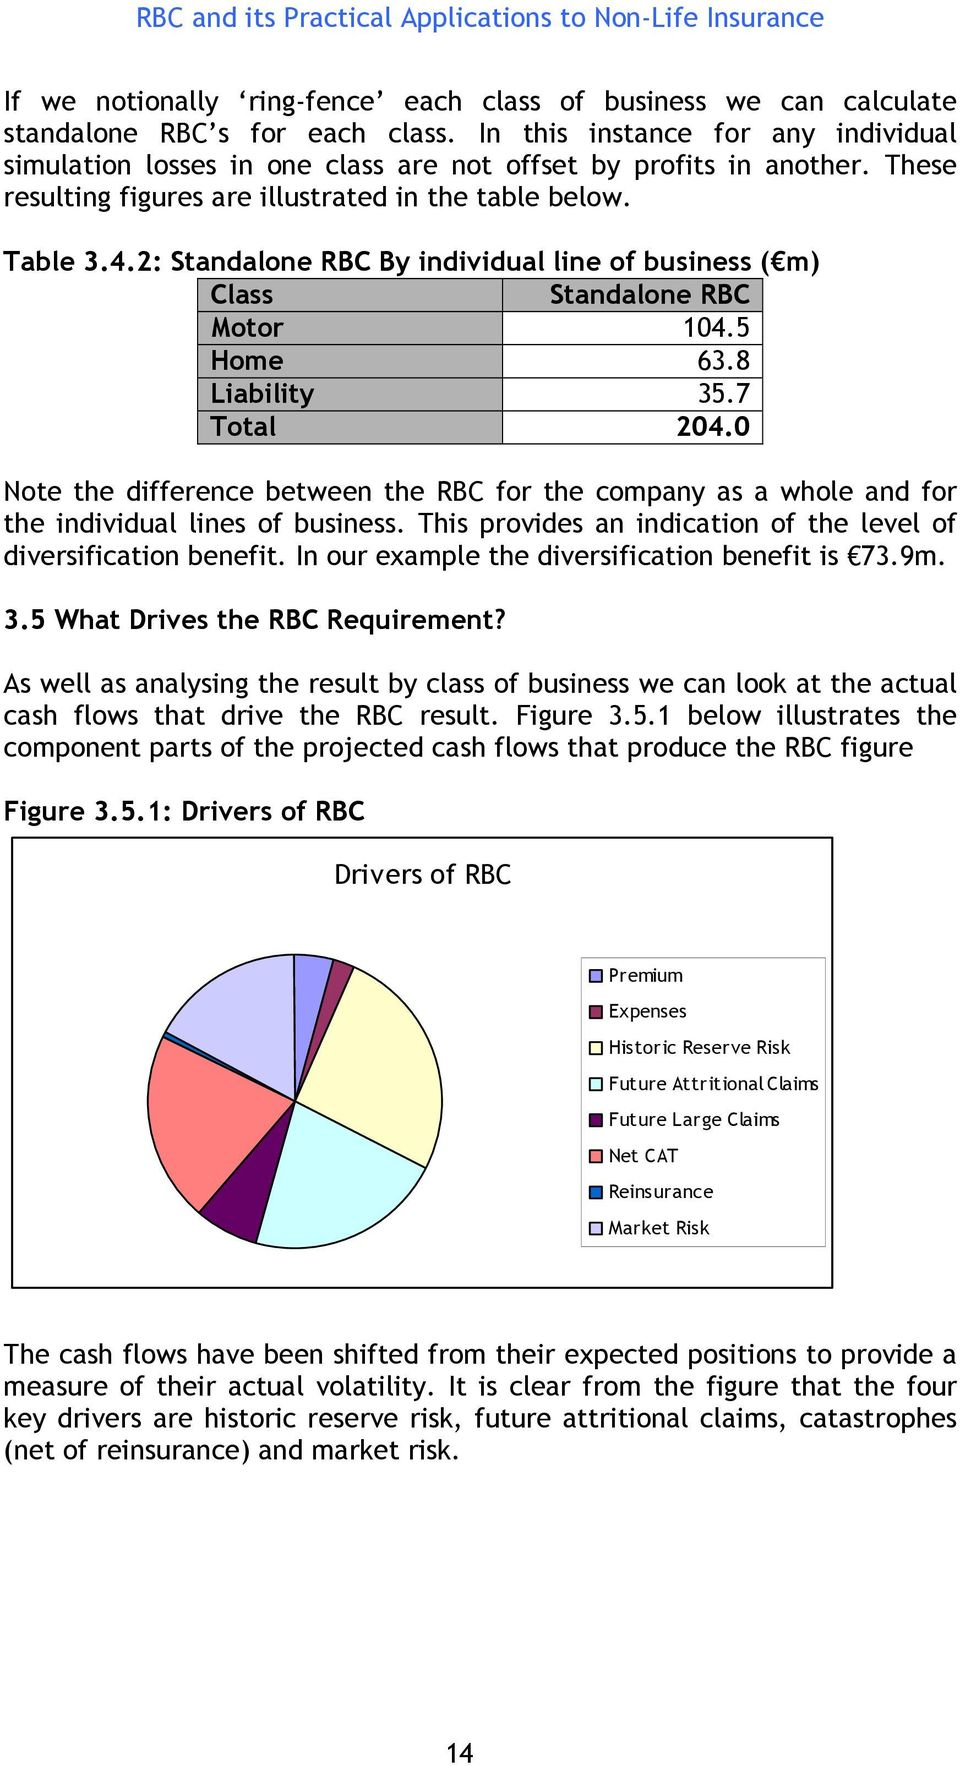 2: Standalone RBC By individual line of business ( m) Class Standalone RBC Motor 104.5 Home 63.8 Liability 35.7 Total 204.